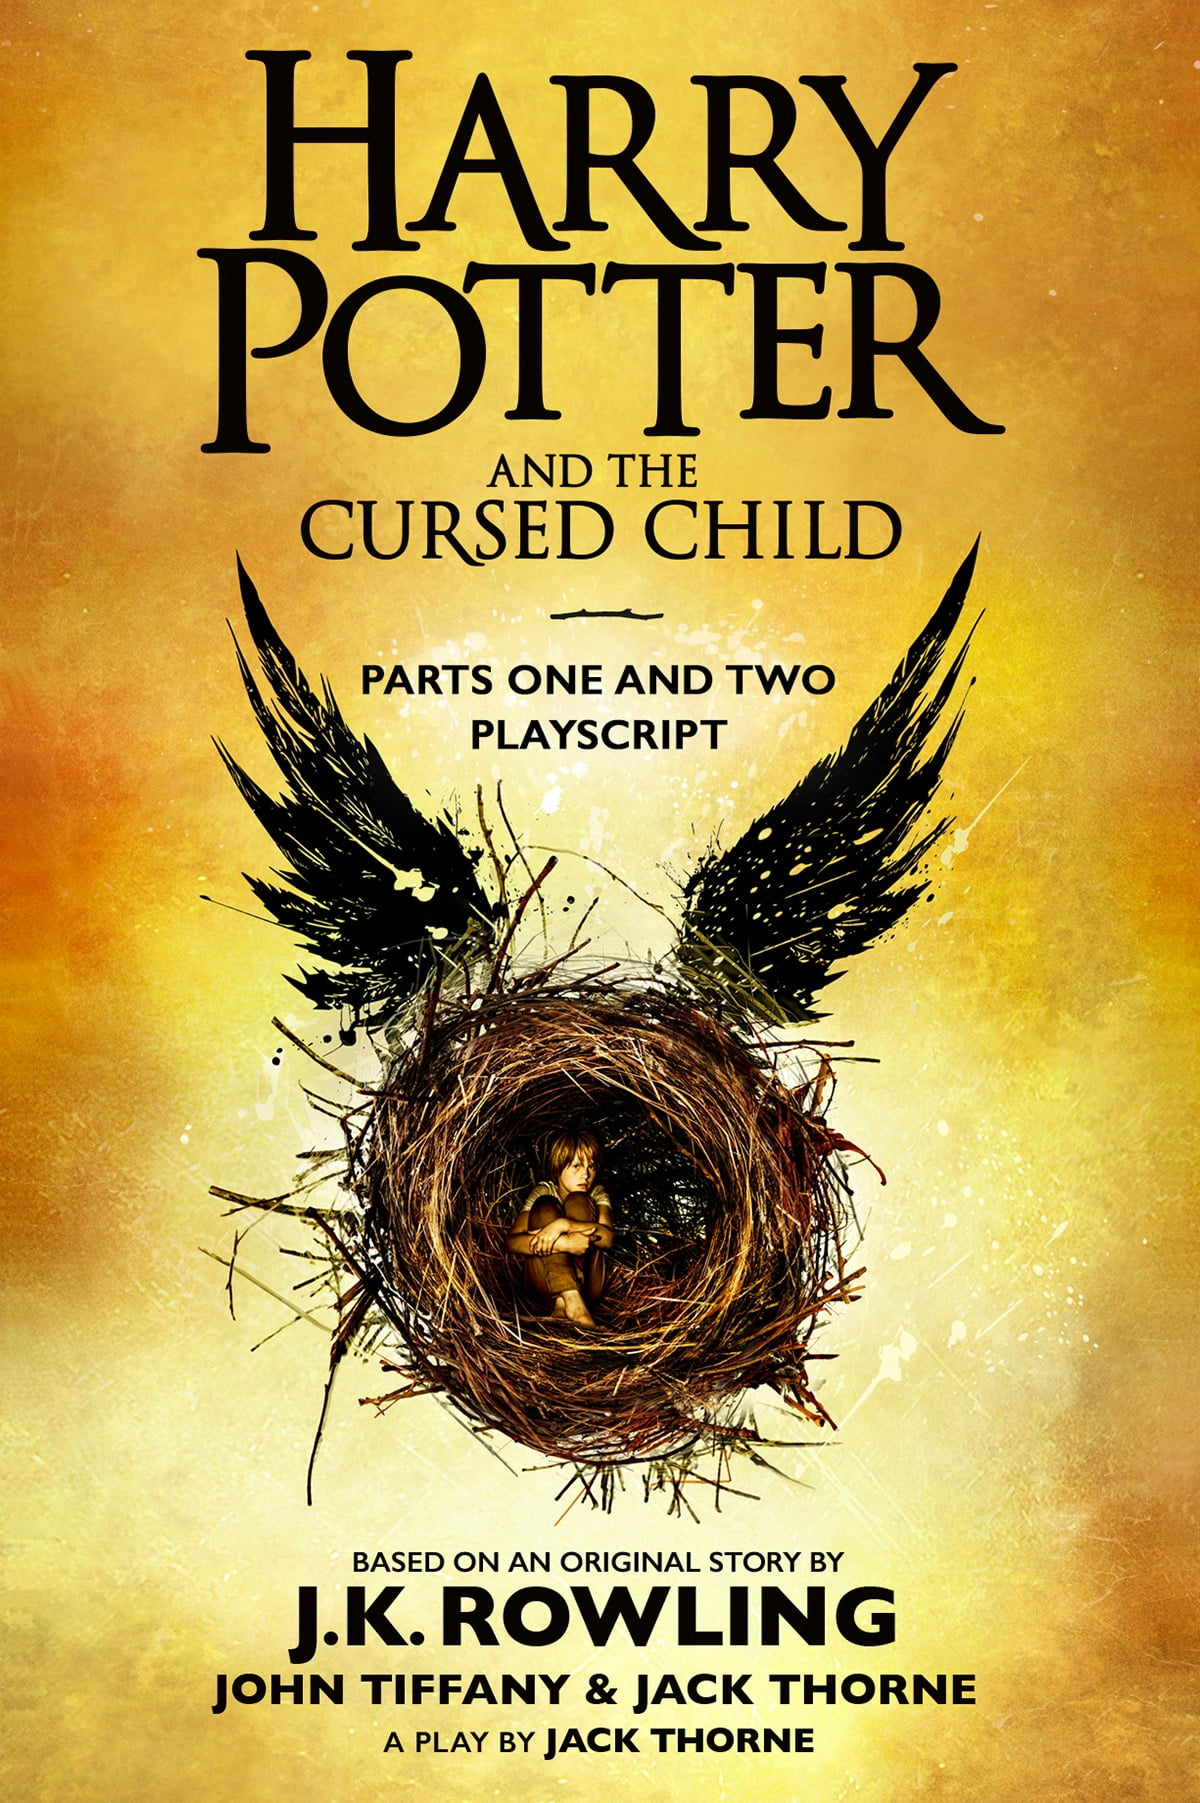 The book thief ebook by markus zusak 9780307433848 rakuten kobo harry potter and the cursed child parts one and two the official playscript of fandeluxe Gallery